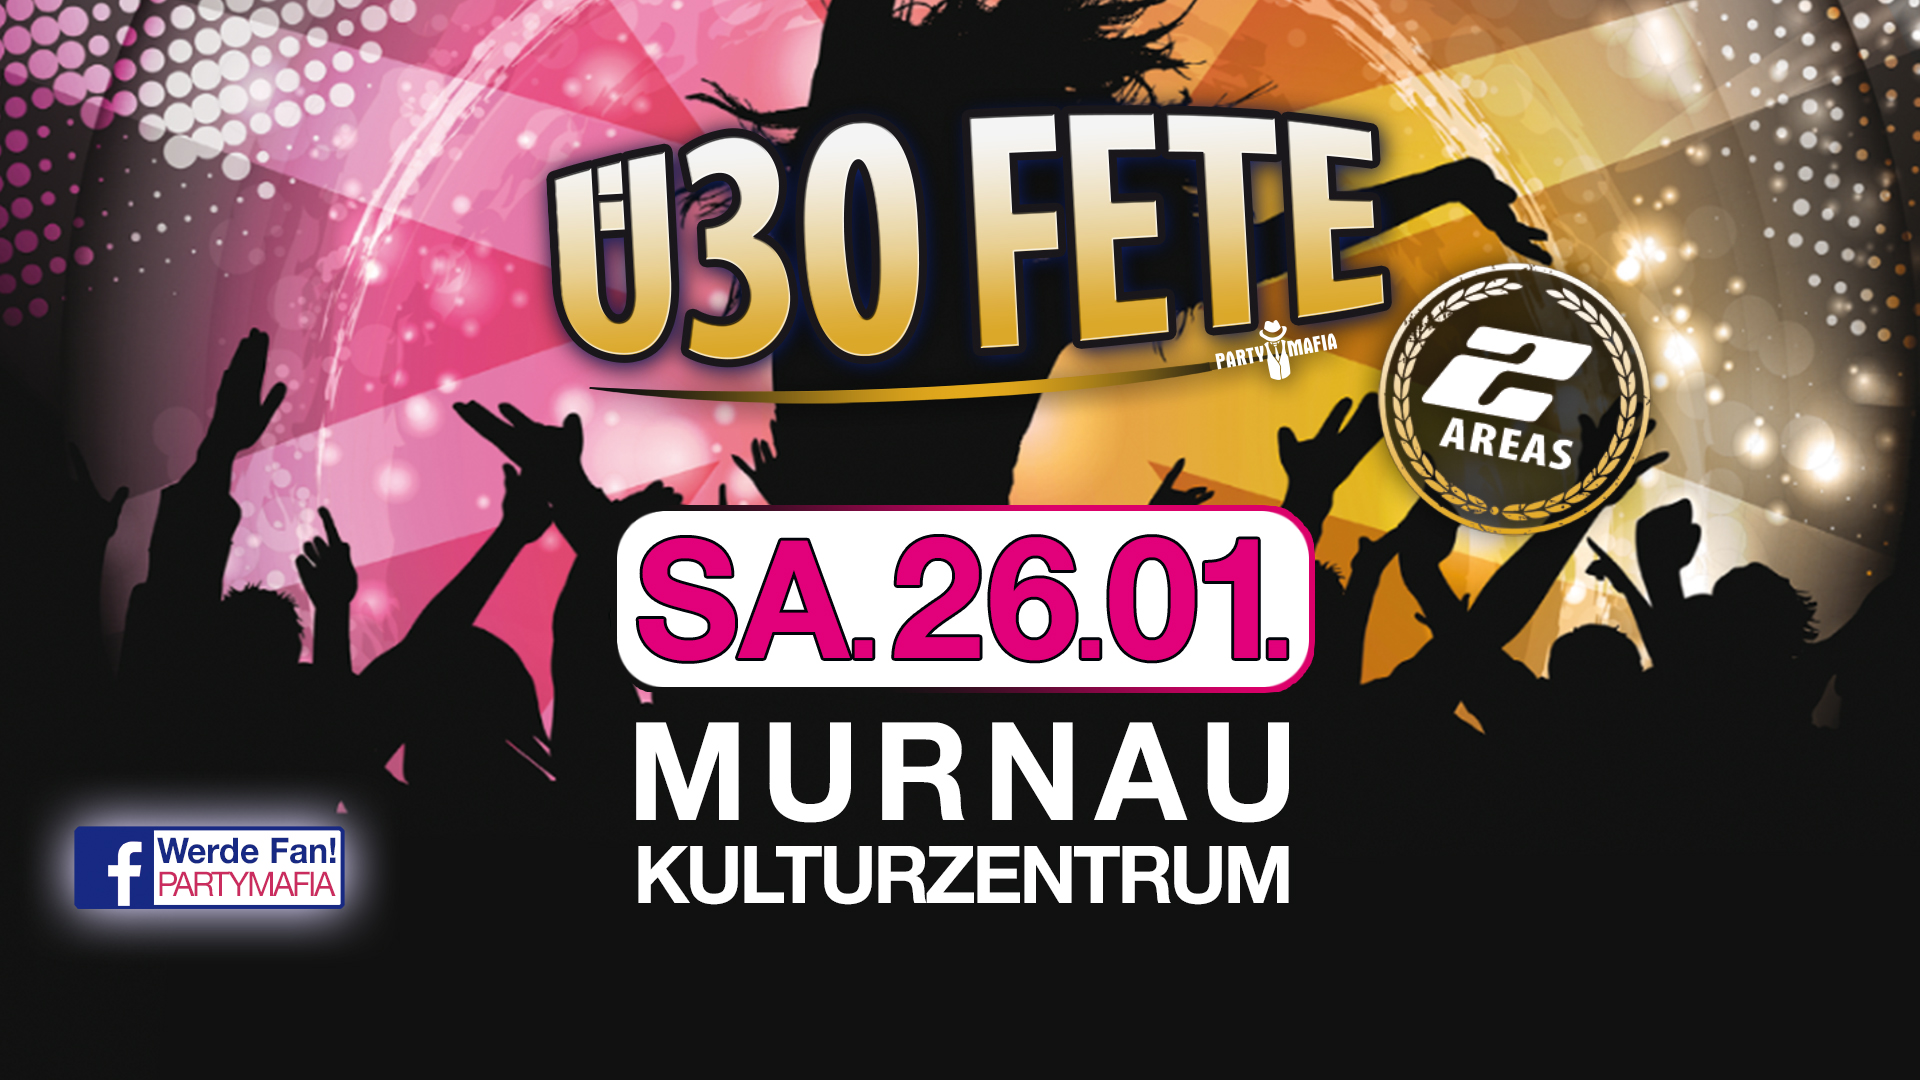 Das Ü30 Party Highlight in Murnau: Die Ü30 FETE